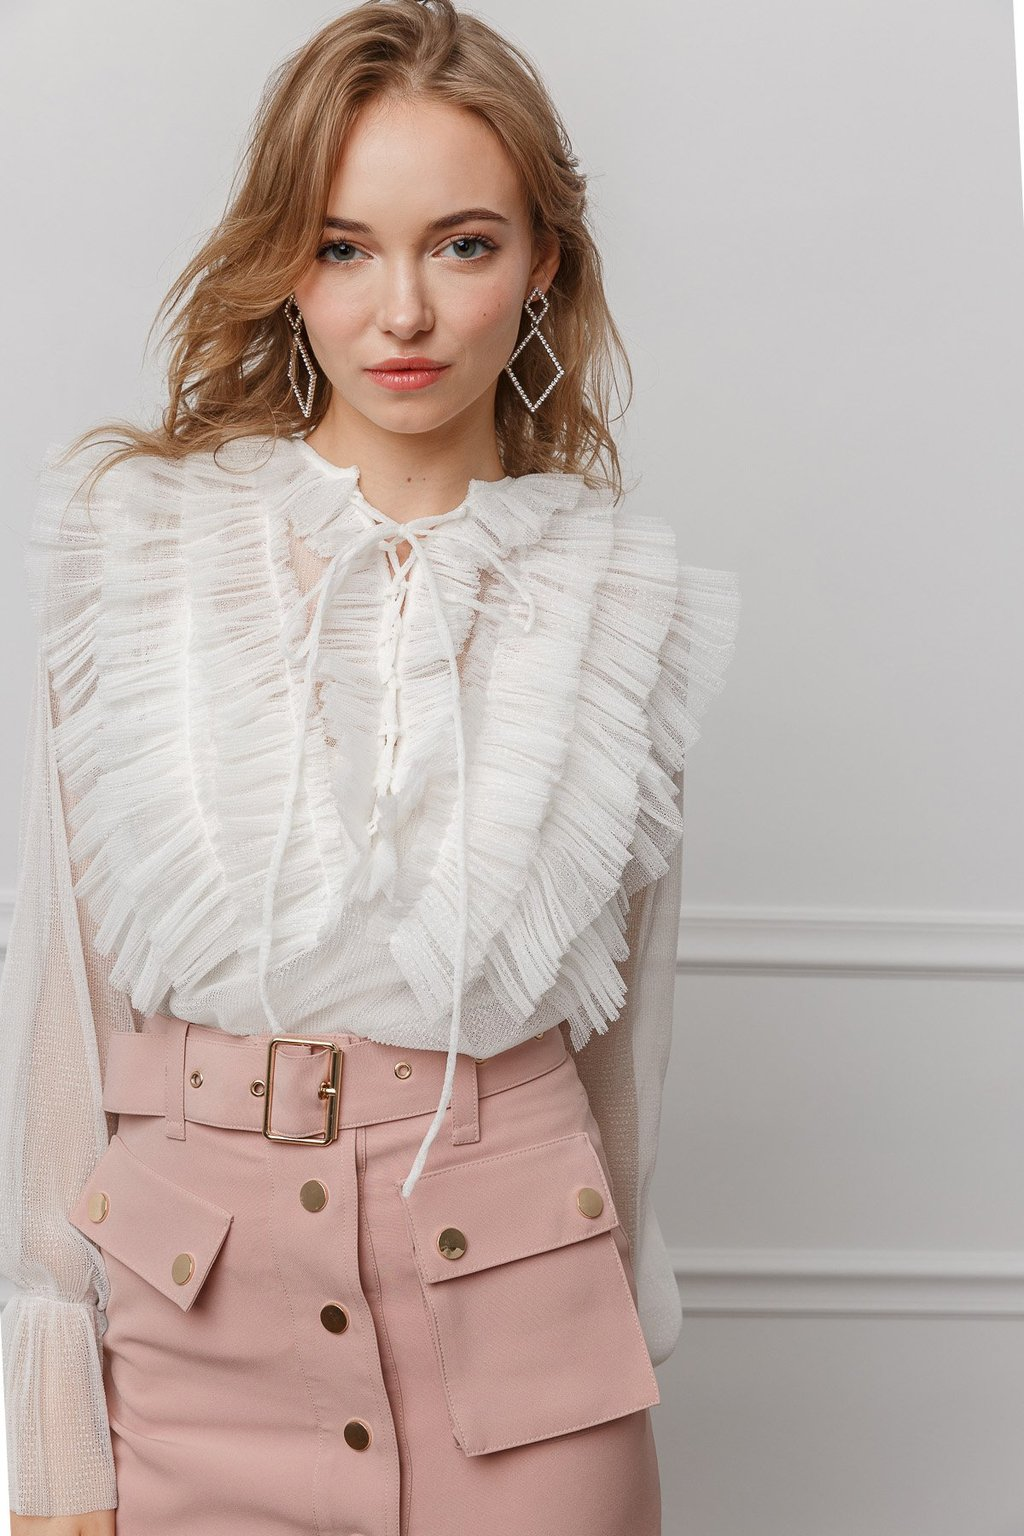 Lex Blouse and Eviee Earrings by J.ING women's fashion and accessories